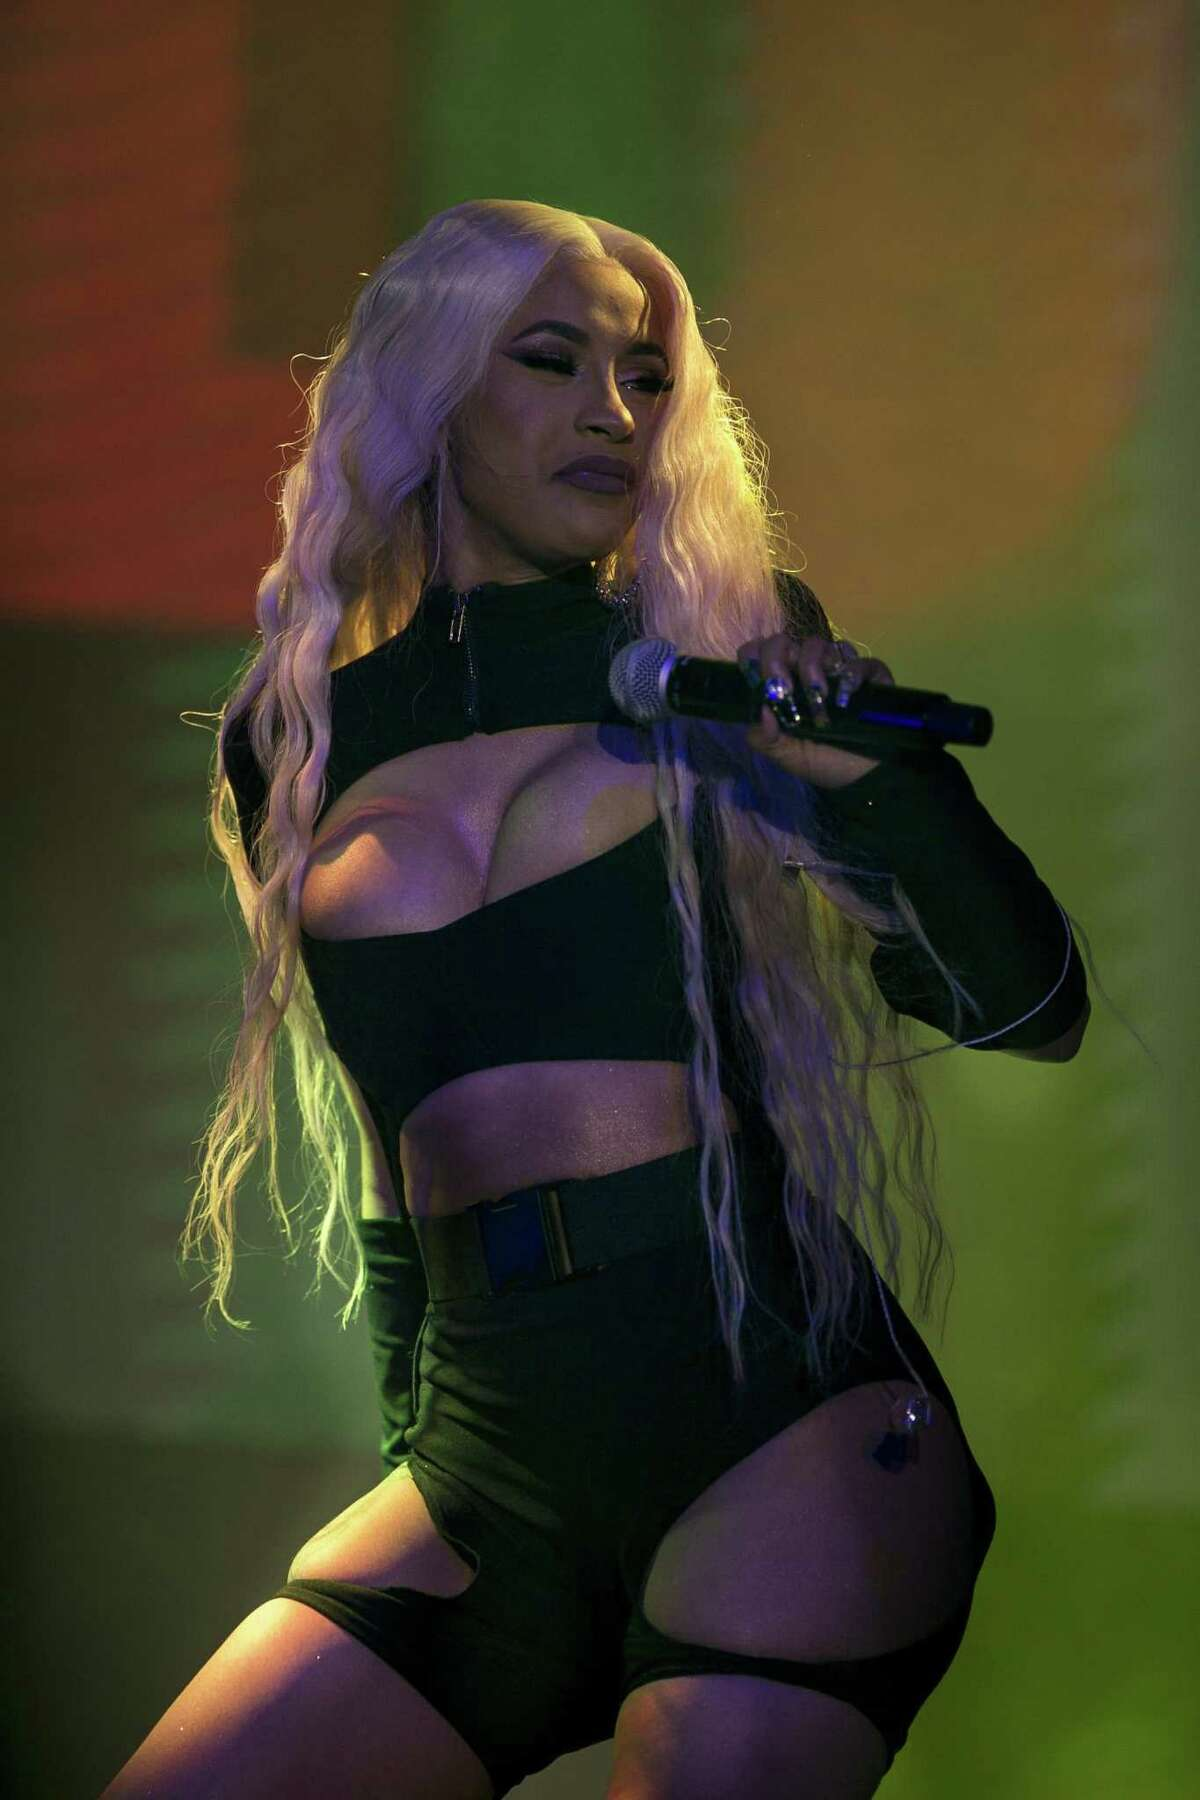 Cardi B performs on the Lone Star stage at the annual Mala Luna Music Festival held at Nelson Wolff Stadium, Saturday, Oct. 27, 2018.